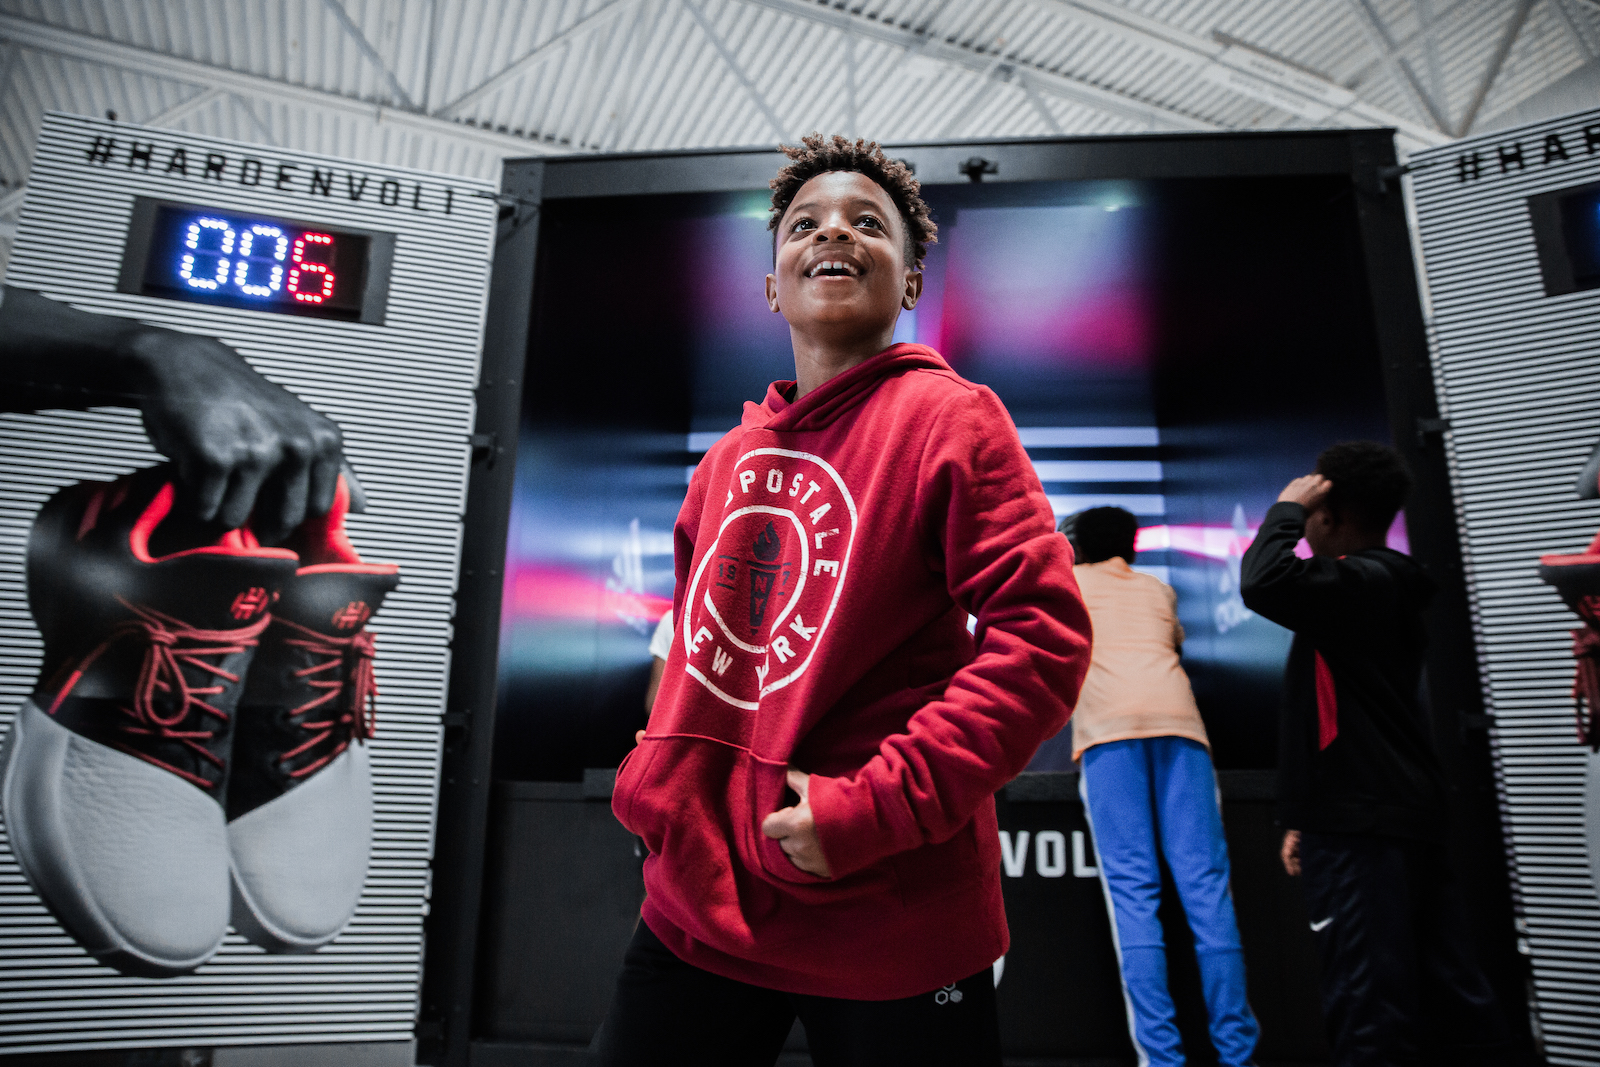 A smiling kid stands in front of the pop-a-shot game while two other kids play behind him.